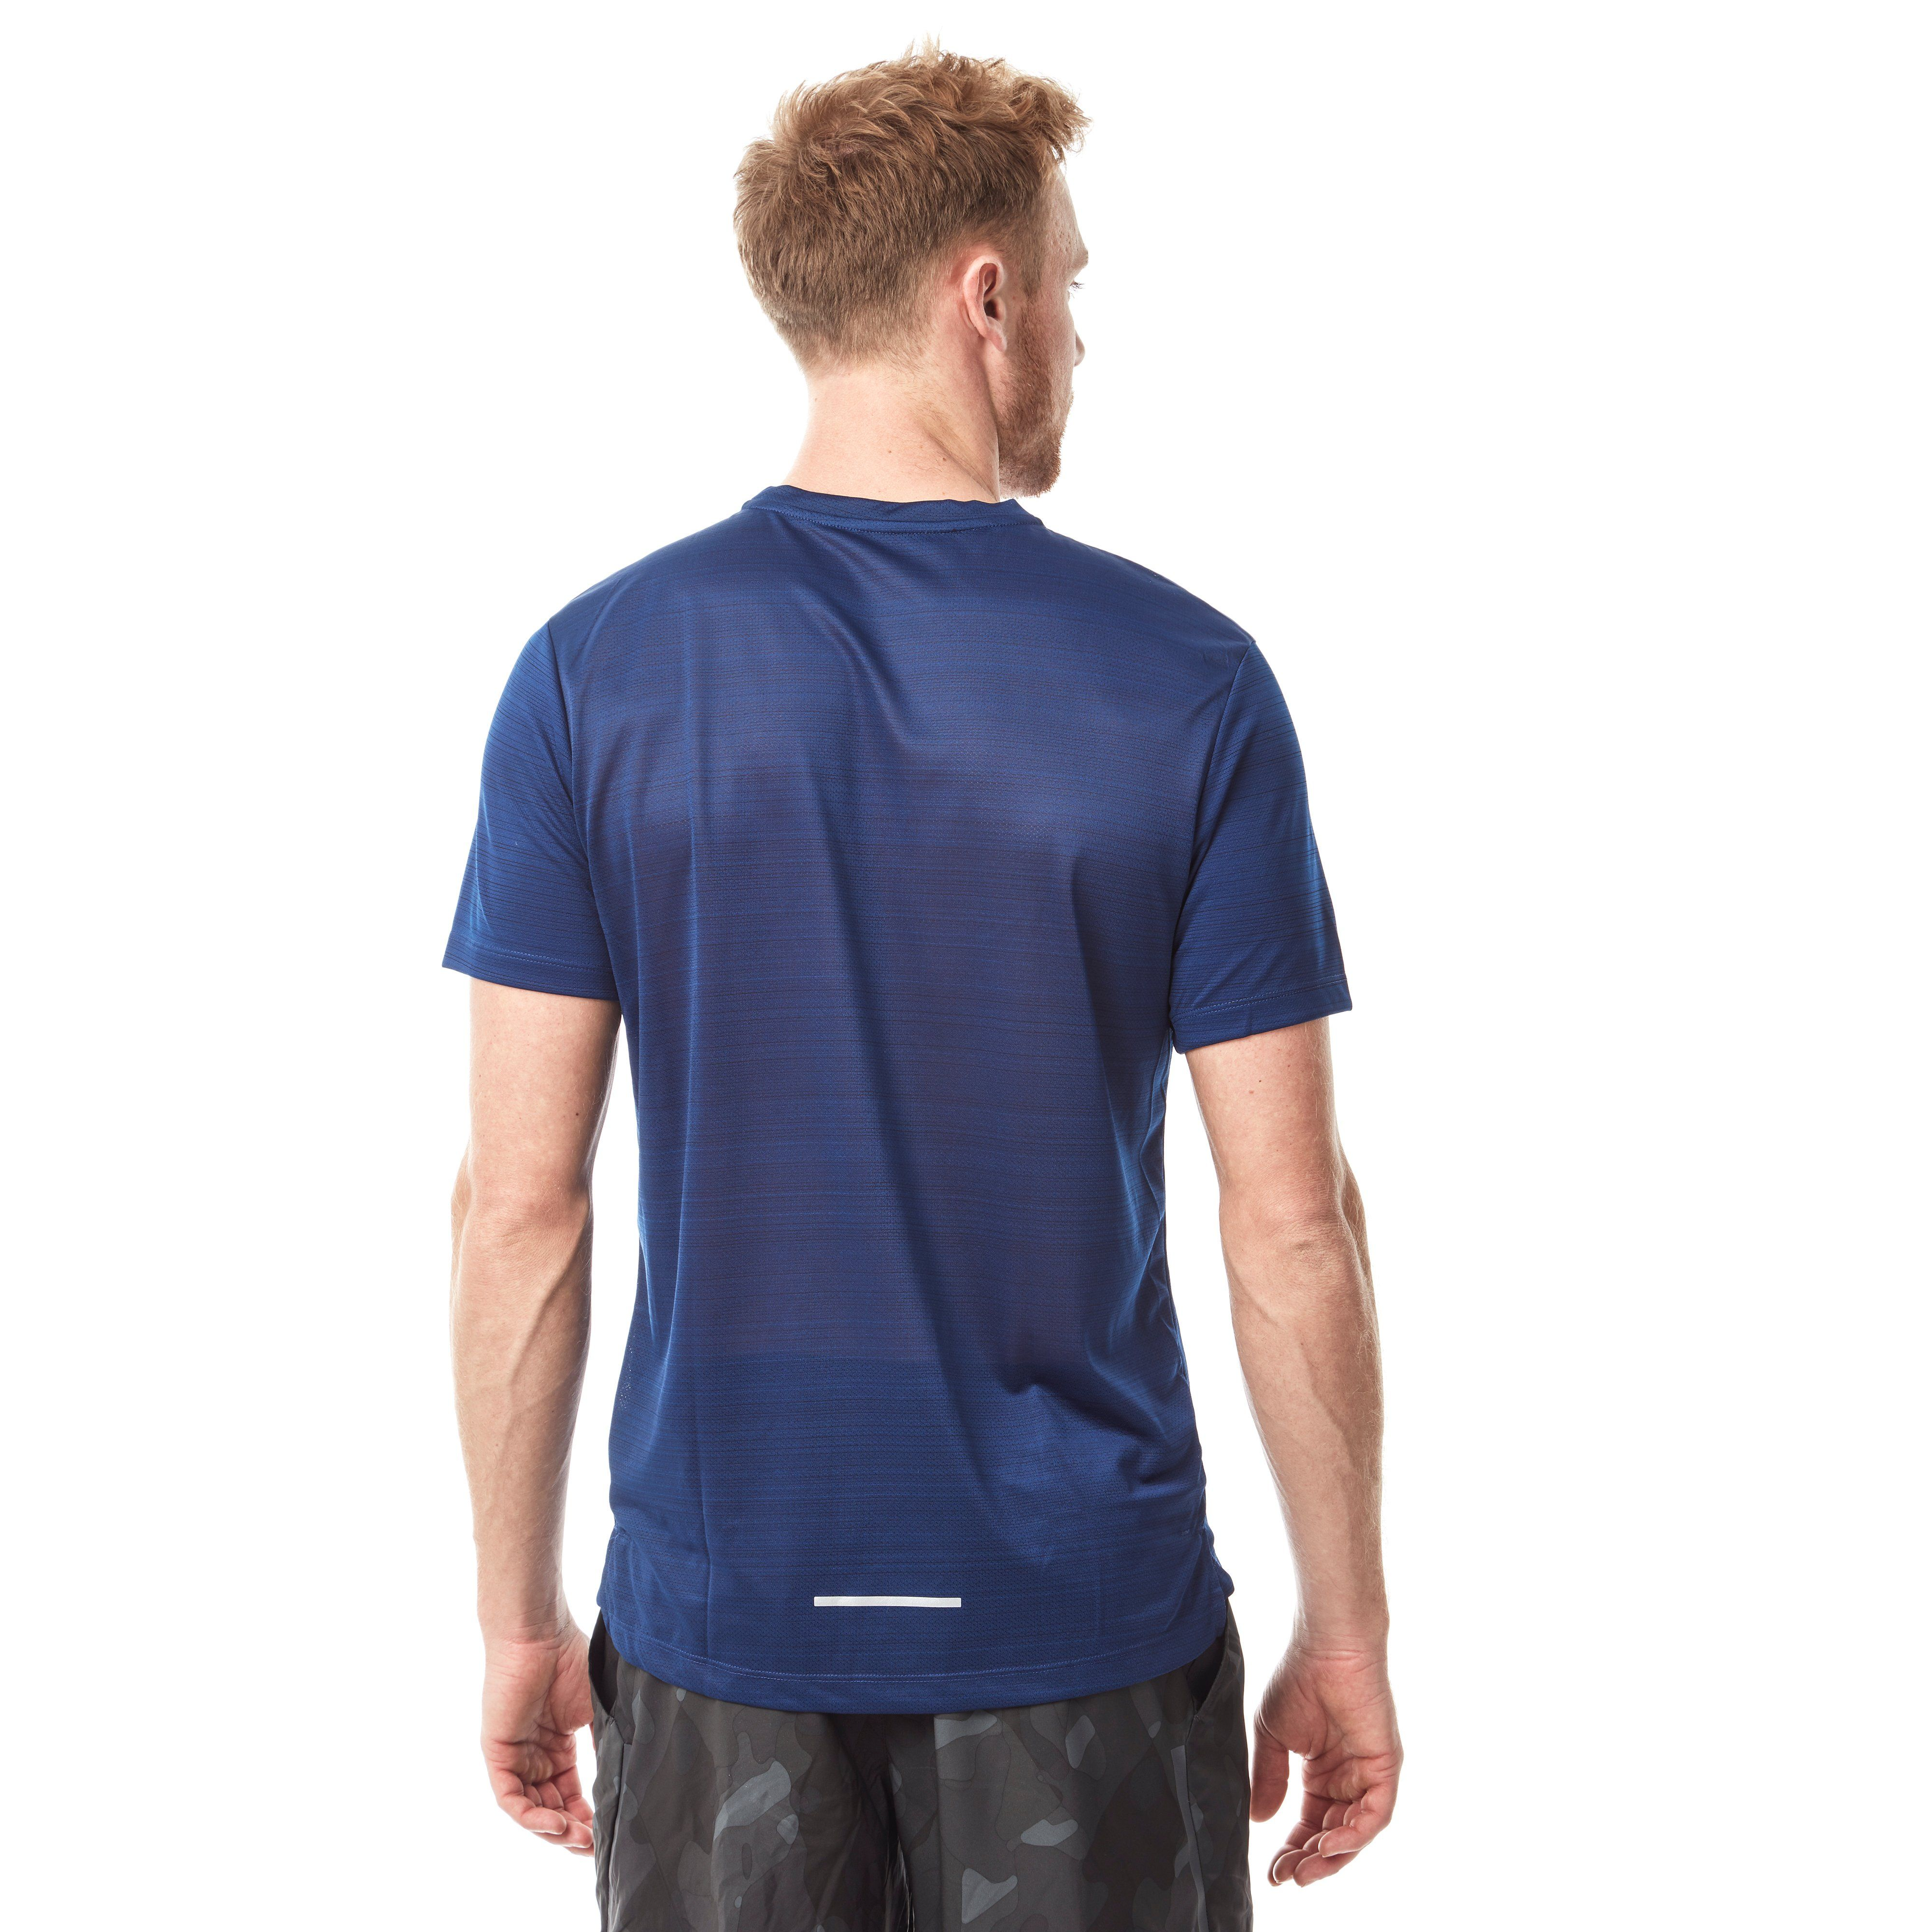 Nike Miler Men's Short Sleeve Running T-Shirt